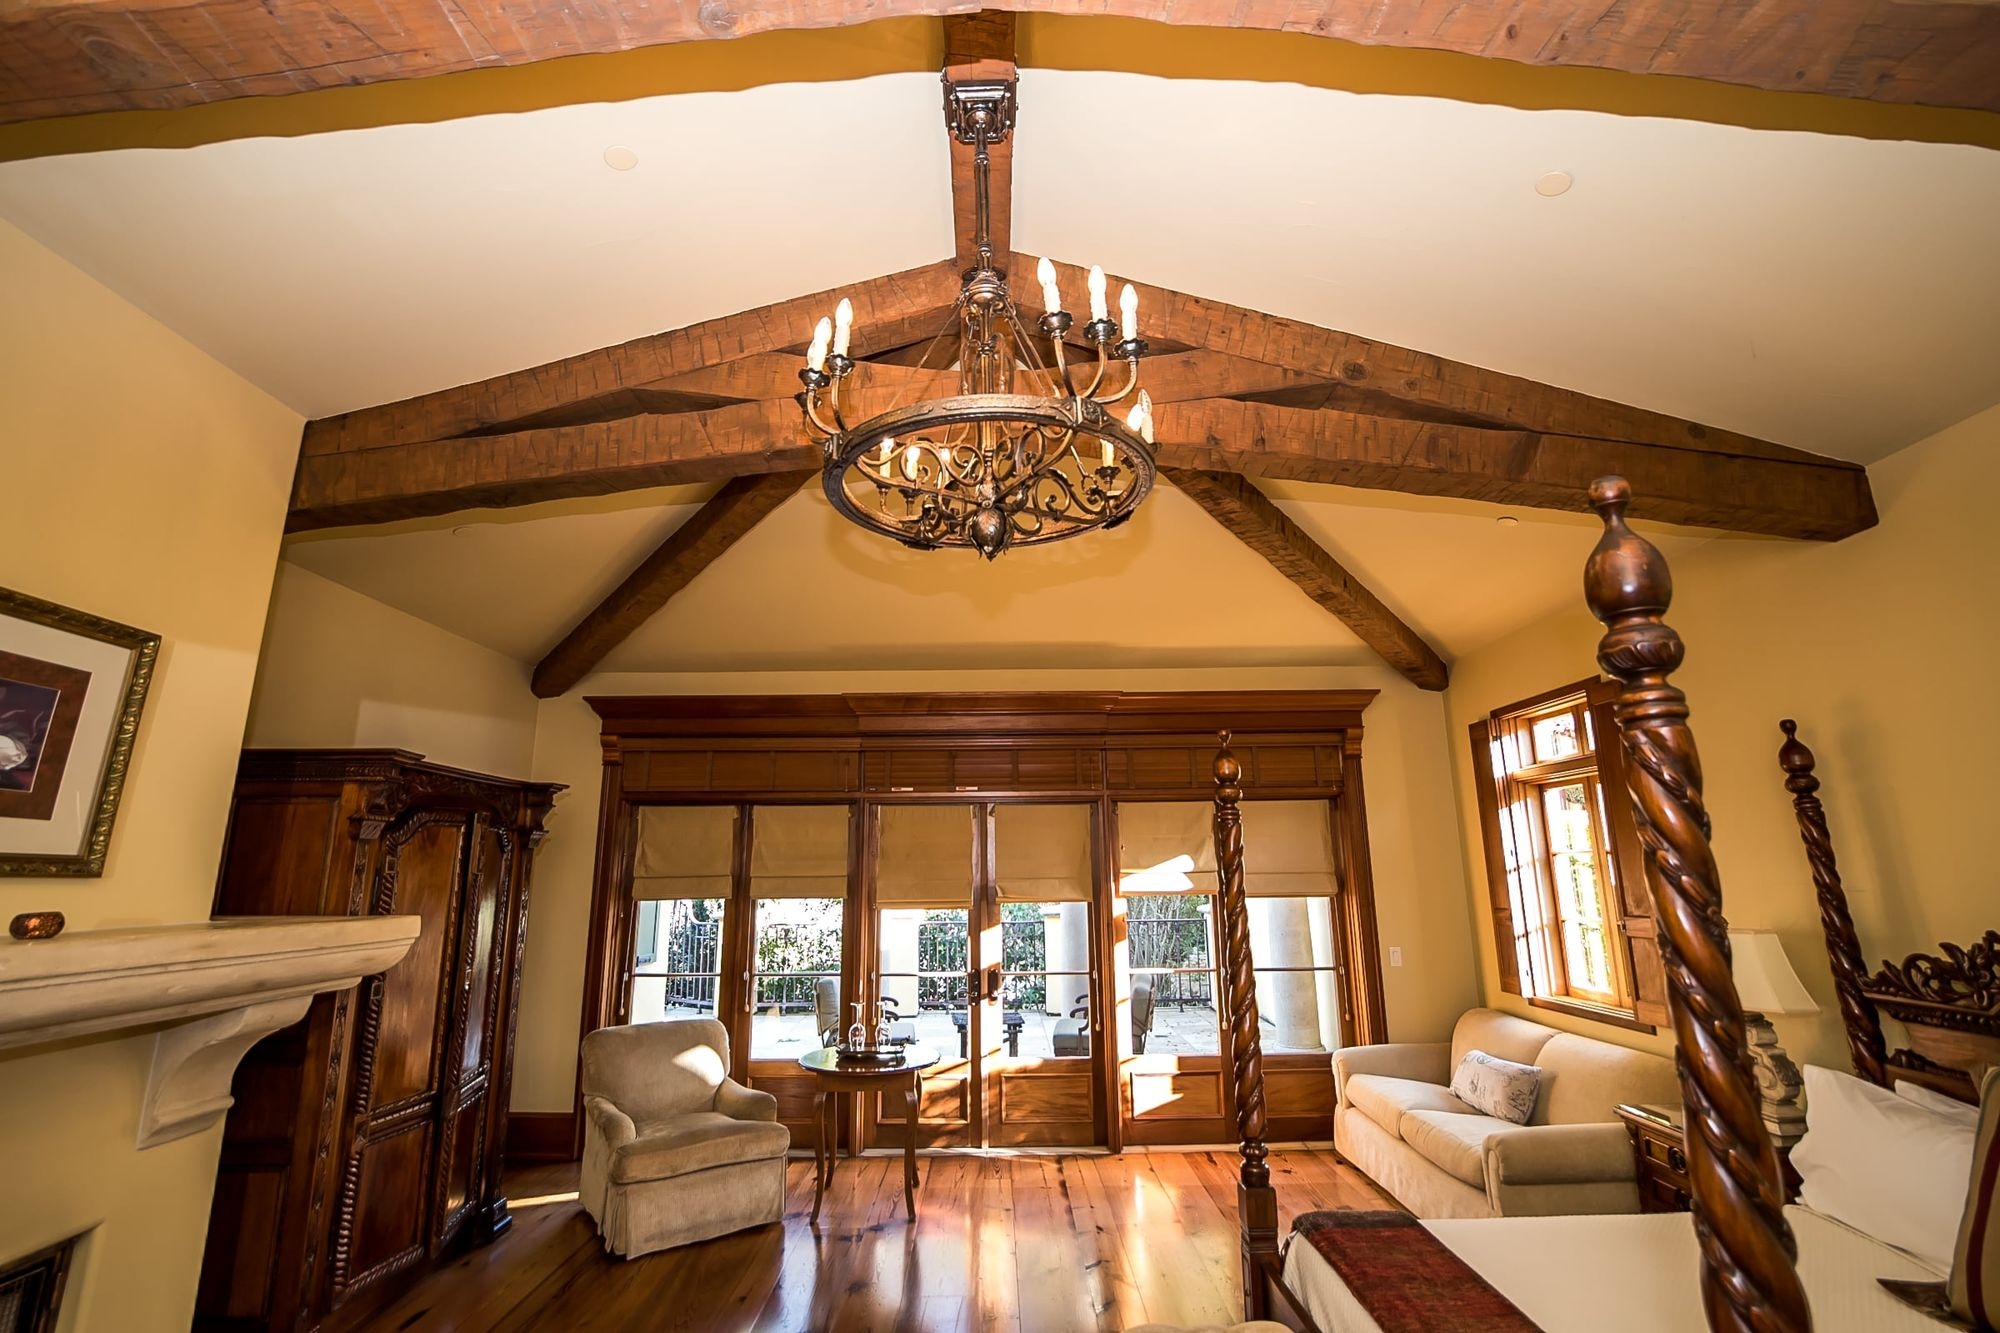 Ceiling rafters with chandelier